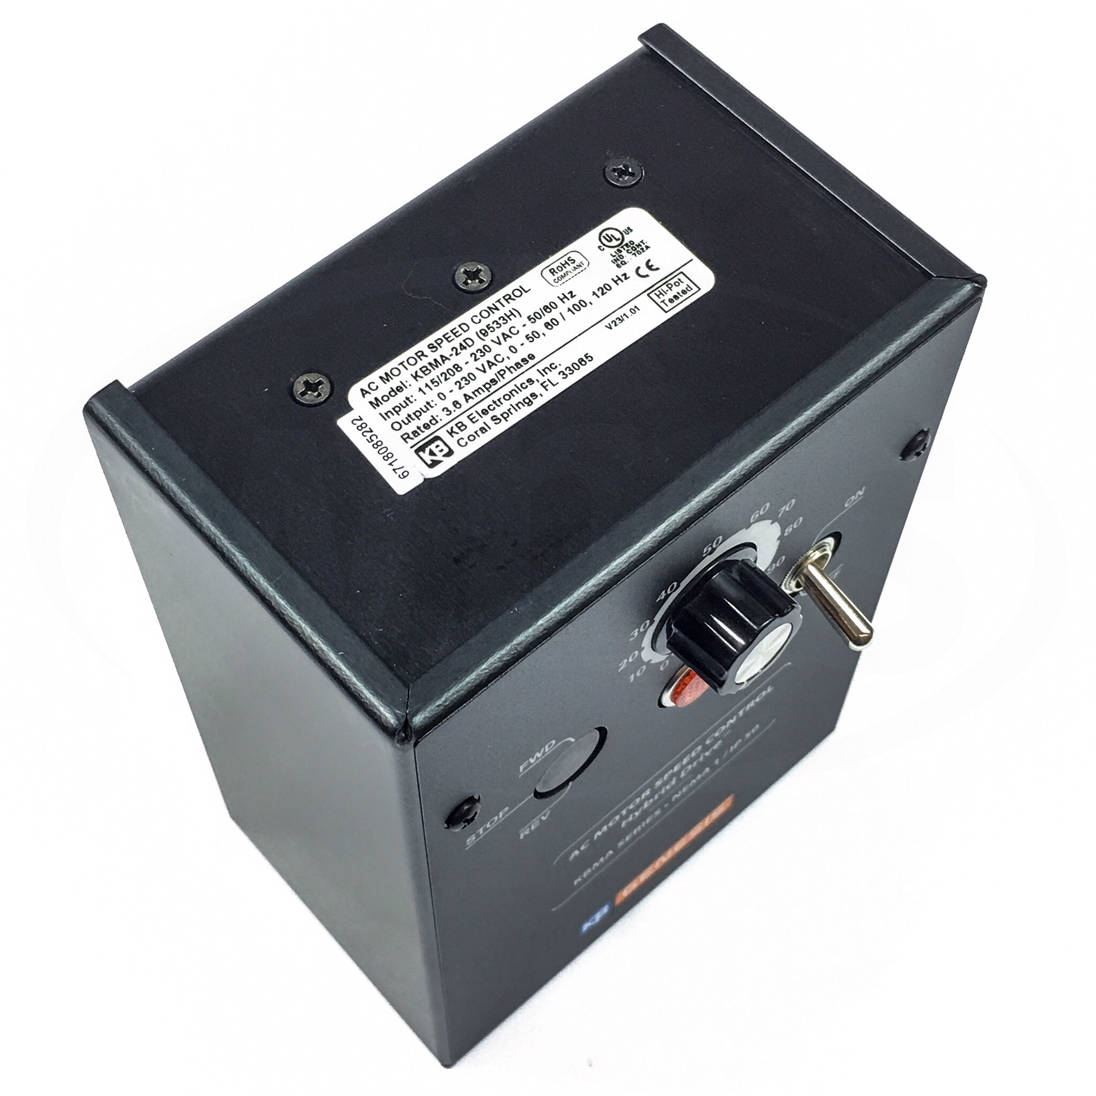 KB Electronics 9533 Adj Frequency Drive, KBMA-24 5